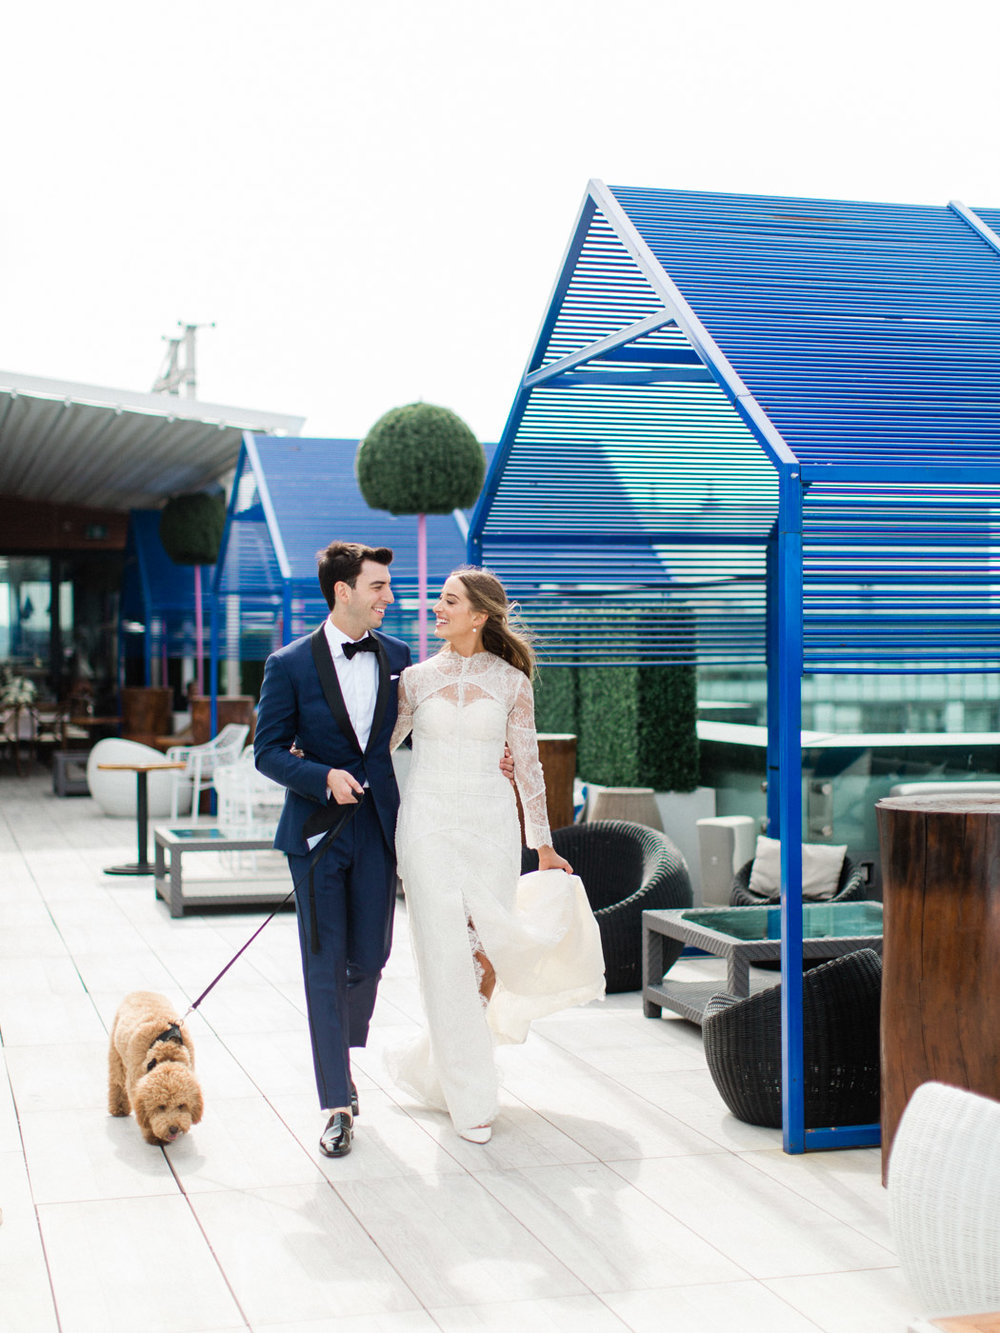 toronto-wedding-photographer-fine-art-documentary-classy-stylish-rooftop-lavelle-89.jpg